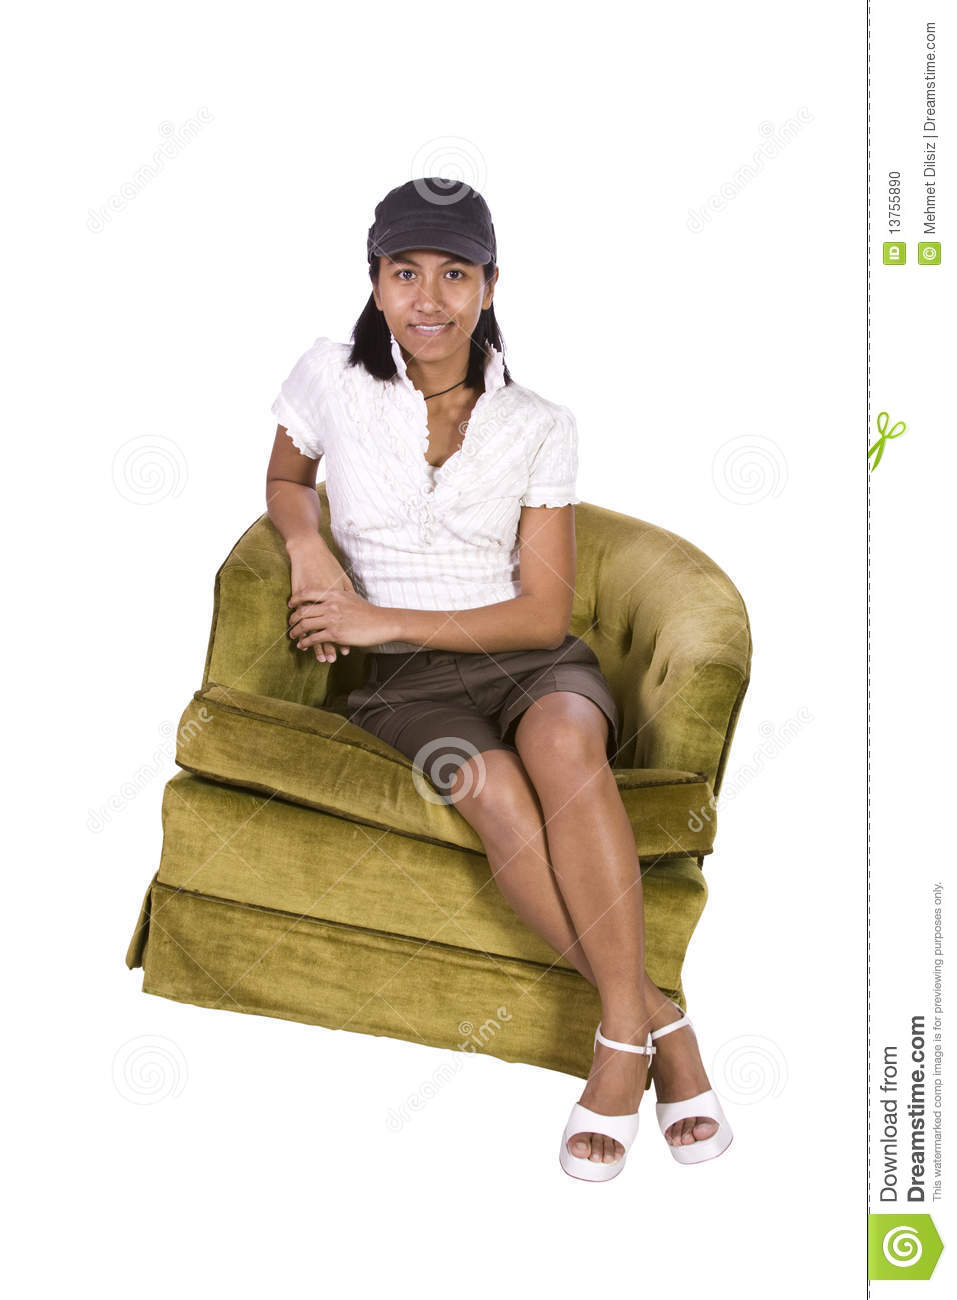 Woman Sitting On A Chair Stock Photo Image 13755890